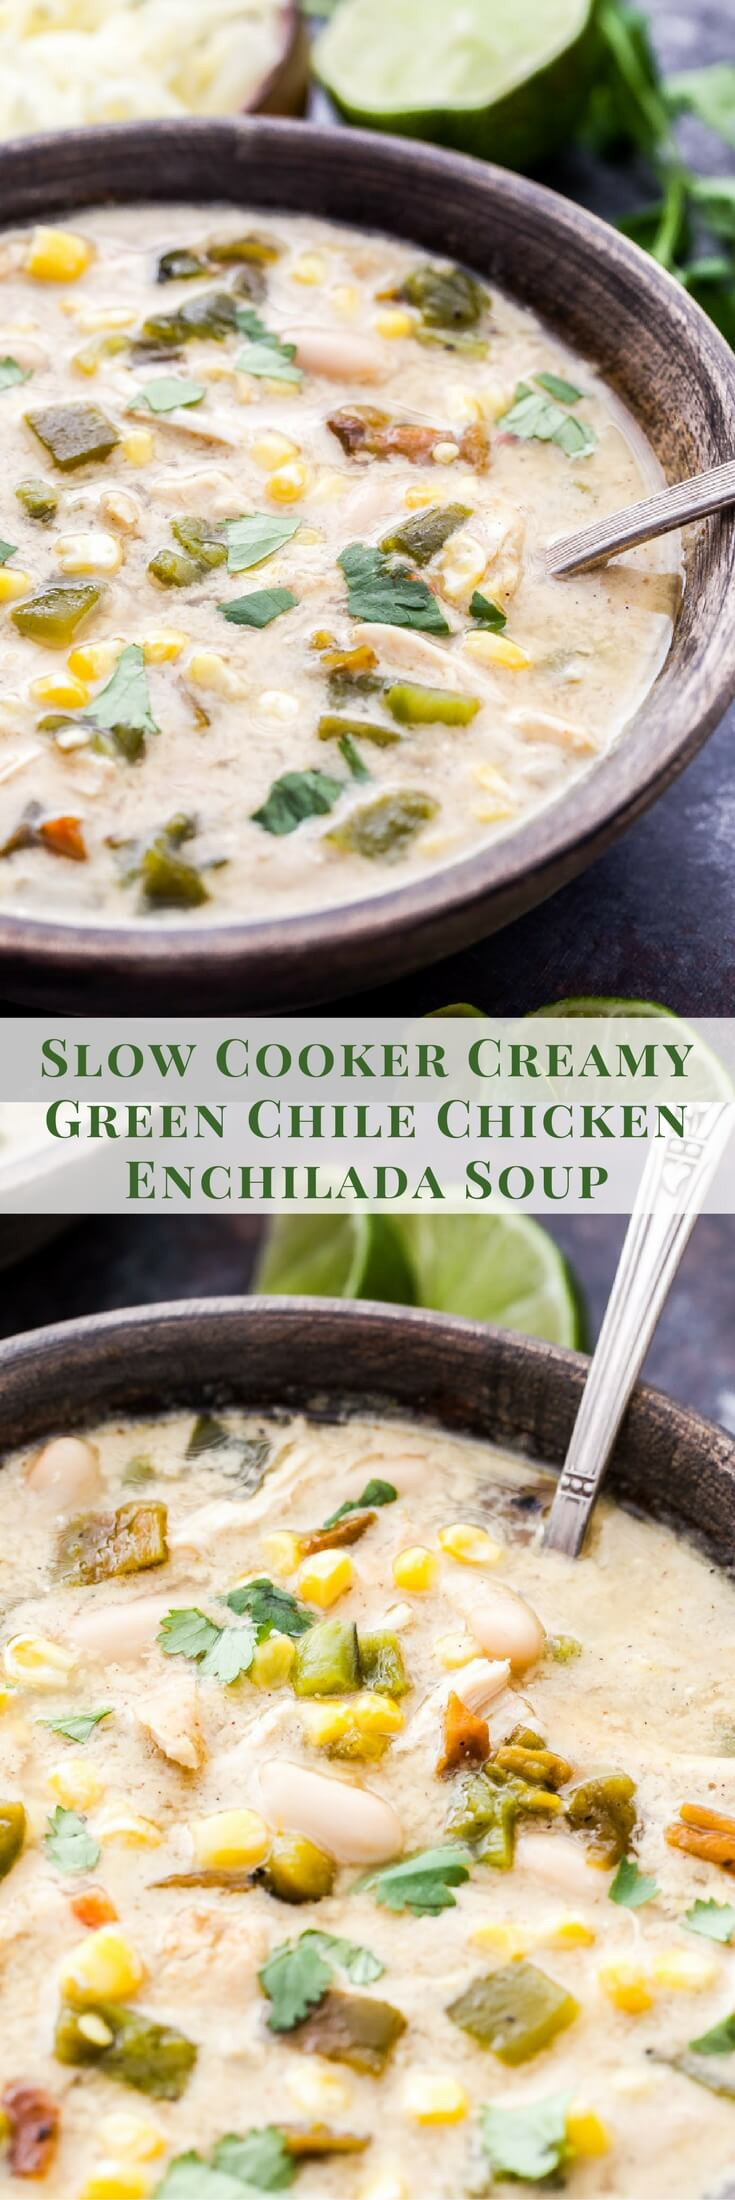 Chicken Chili Soup  Slow Cooker Creamy Green Chile Chicken Enchilada Soup